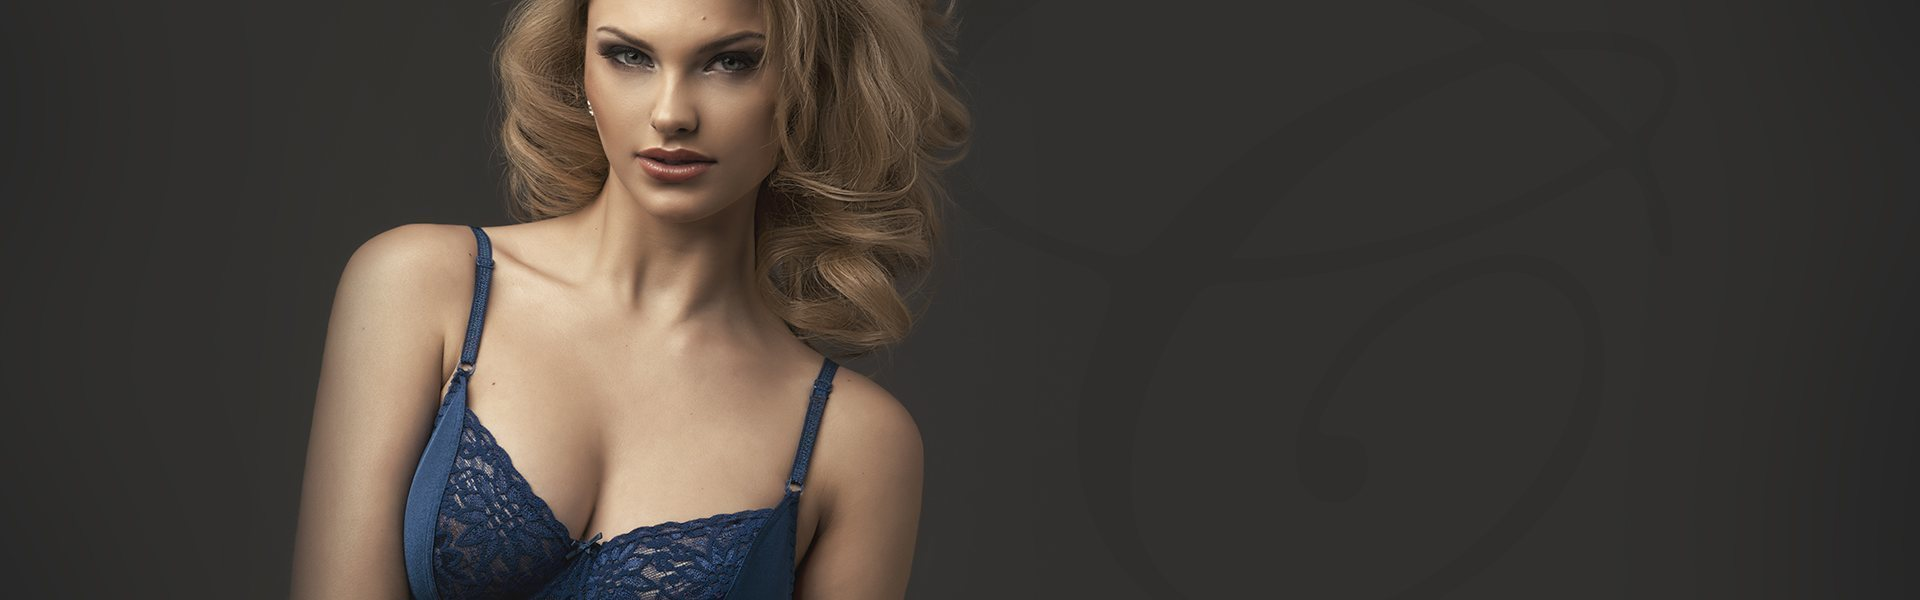 portrait of a model blonde woman wearing blue bra